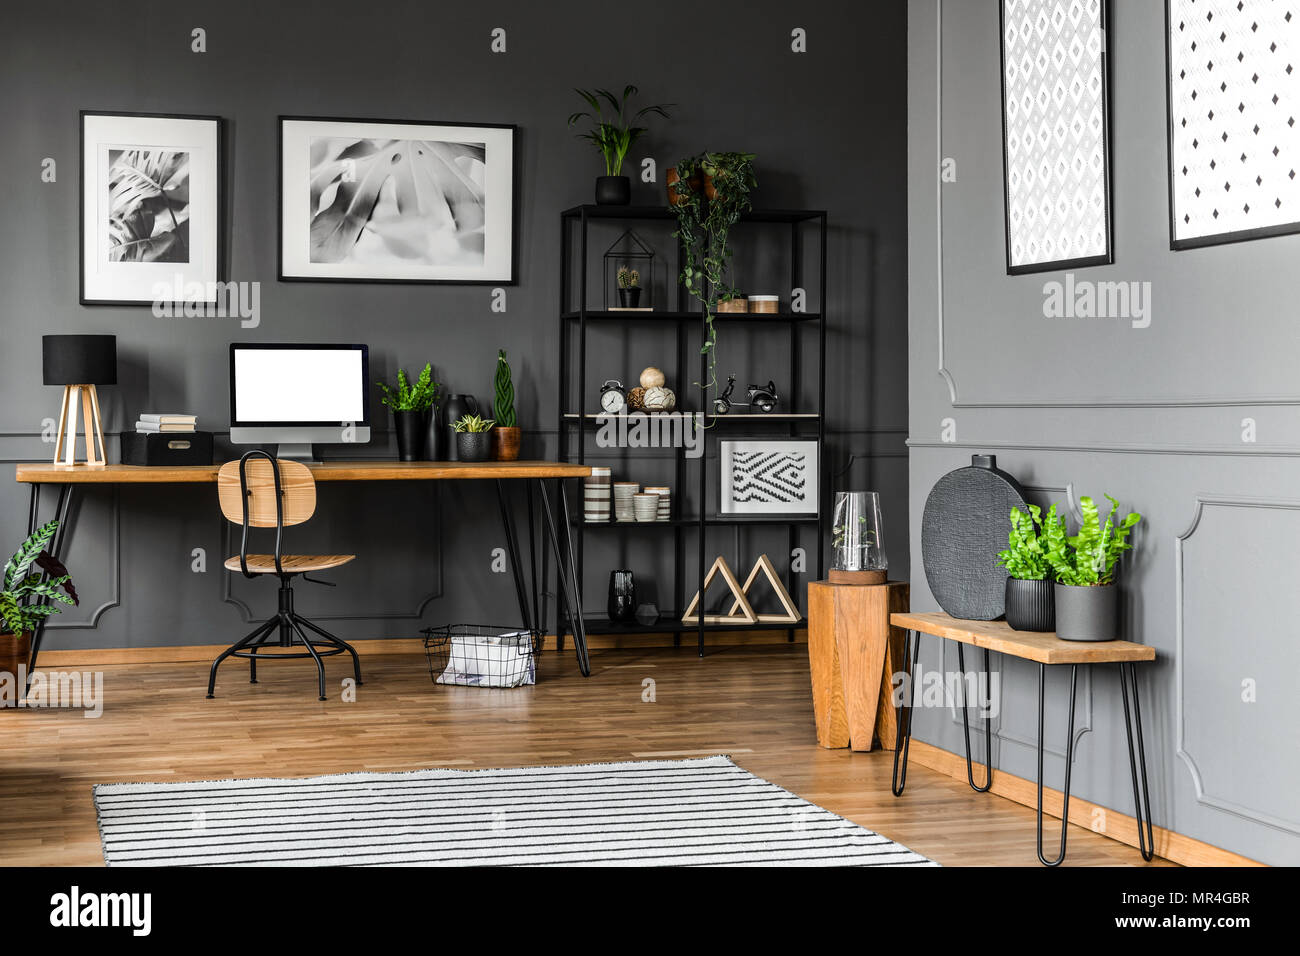 Next office desk Desk Makeover Black Rack With Decorations Standing Next To Wooden Chair And Desk With Plants Lamp And Computer In Home Office Interior Real Photo Black Rack With Decorations Standing Next To Wooden Chair And Desk